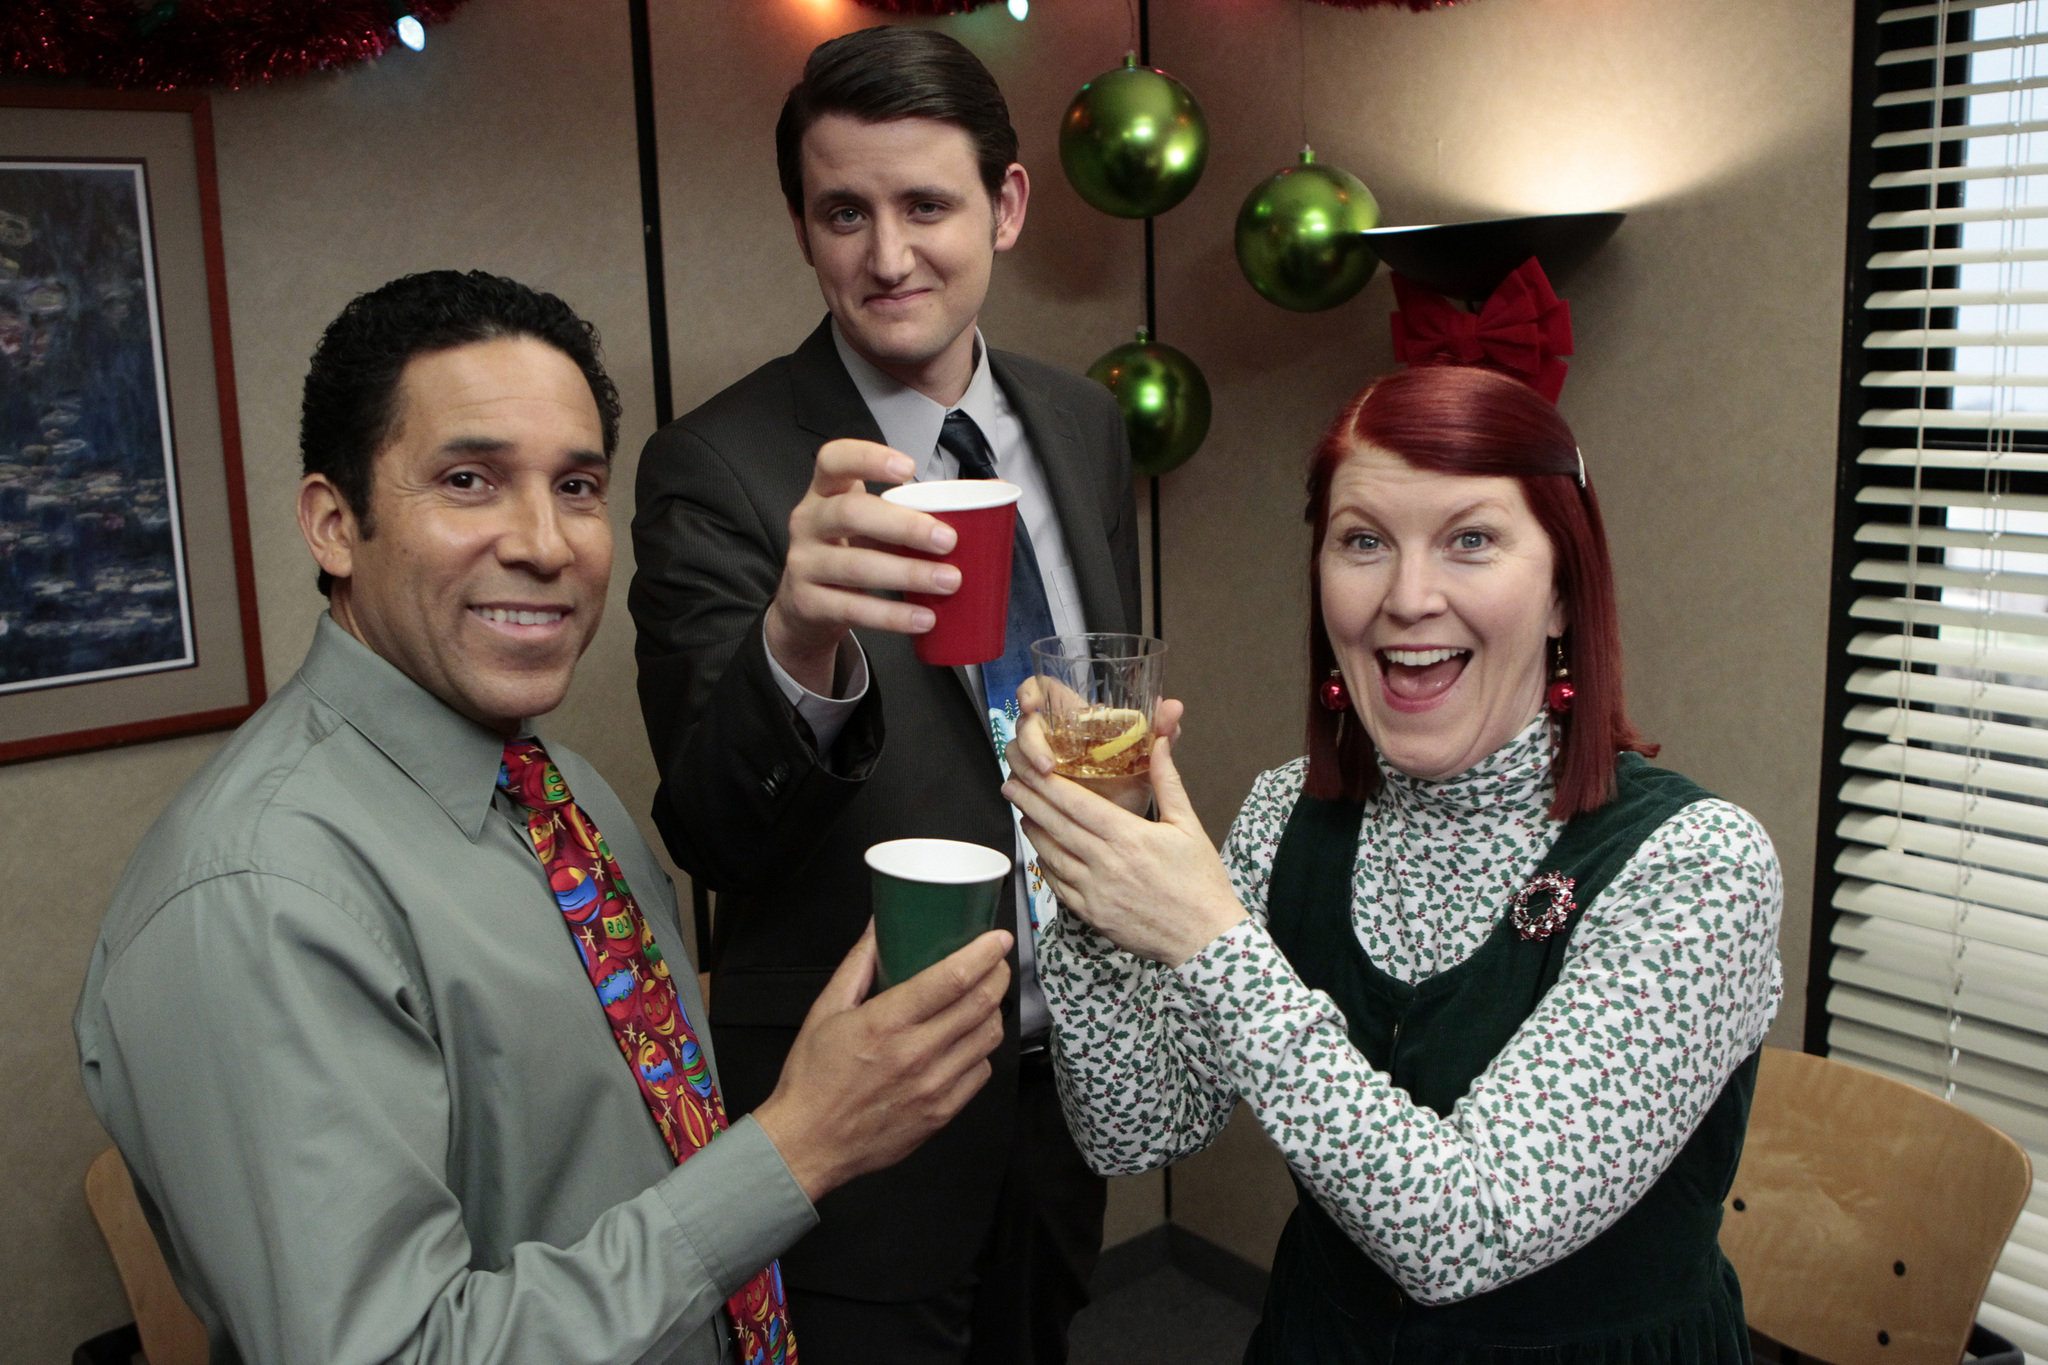 Oscar Nuñez as Oscar Martinez, left, Zach Woods as Gabe Lewis and Kate Flannery as Meredith Palmer in NBC's 'The Office.'